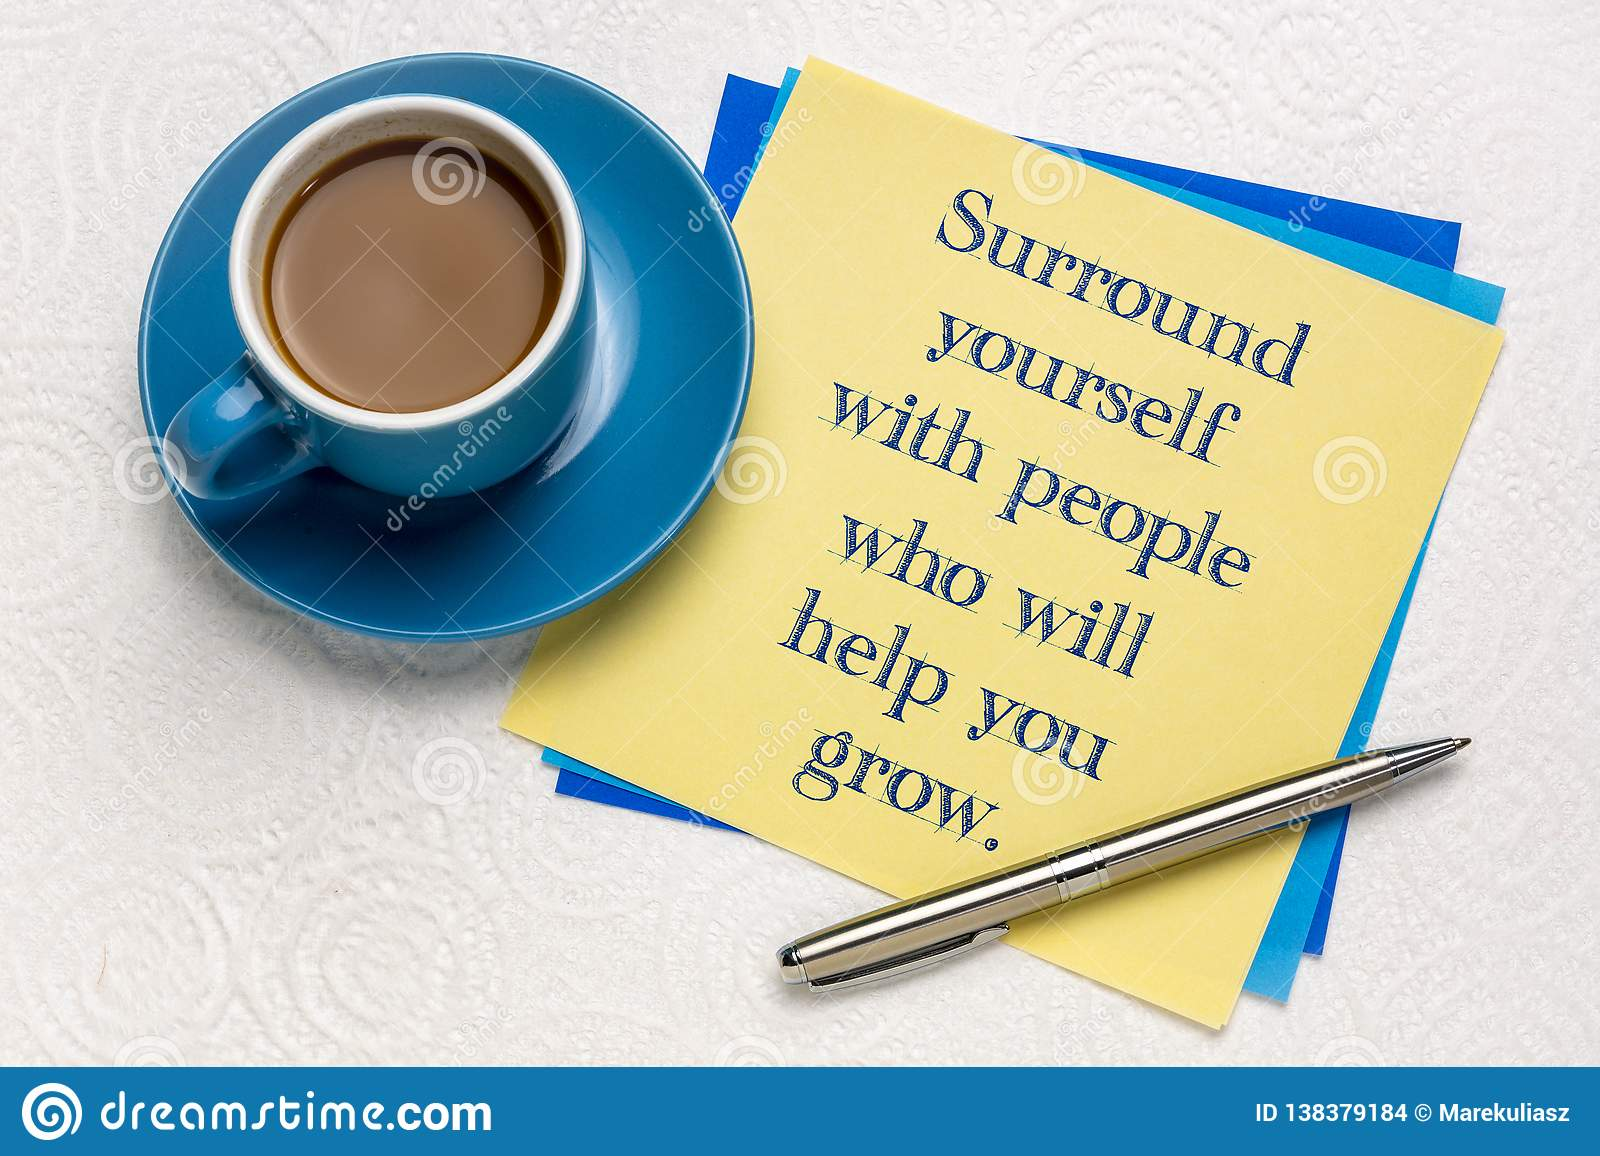 Surround yourself with people who will help